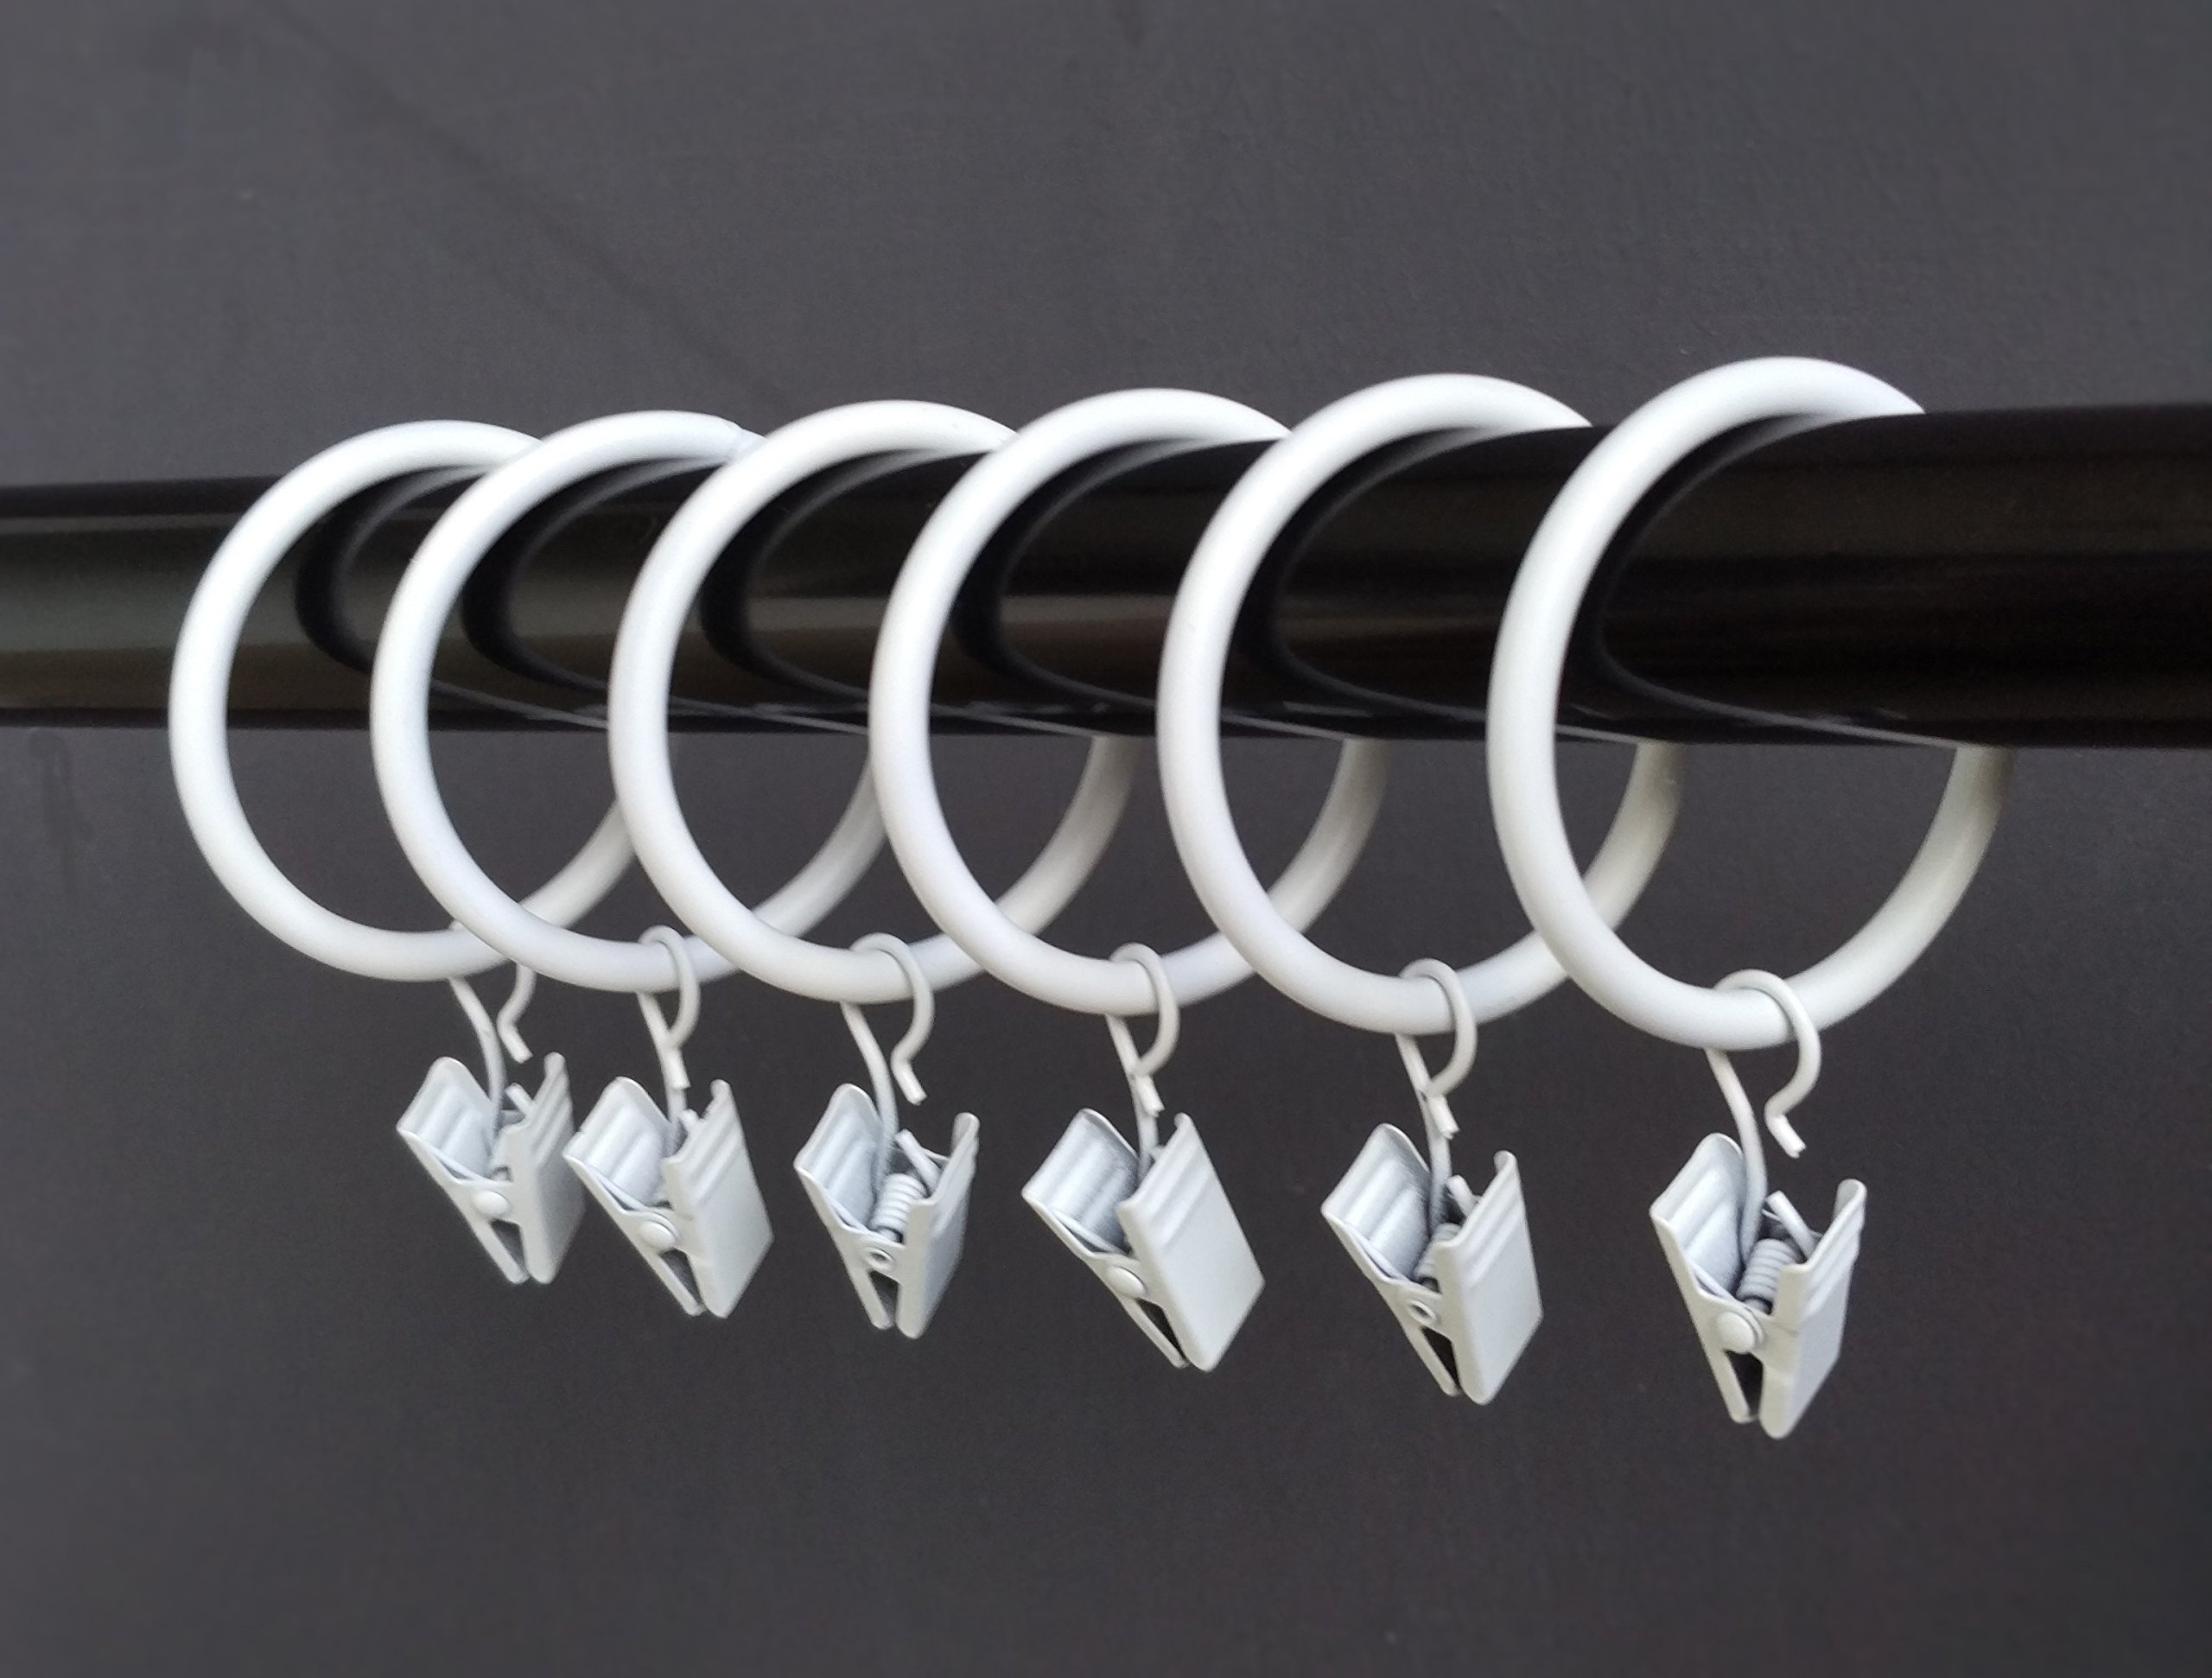 (2'')2 Inches Smooth Metal Curtain Rings with Clips (white) (20)